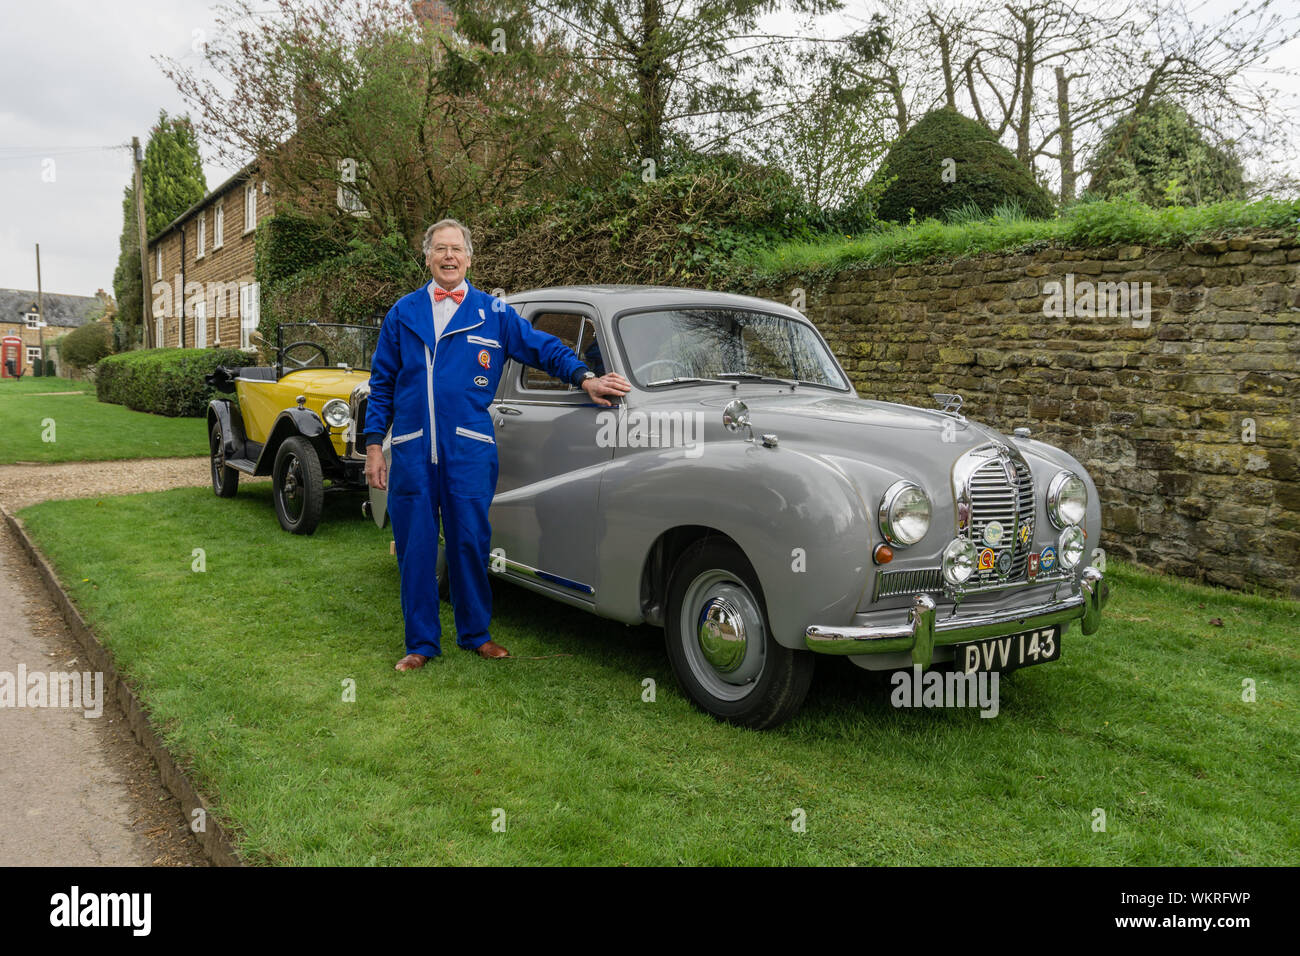 Car enthusiast, in made to measure blue overalls, poses in front of his vintage Austin saloon, Litchborough, UK Stock Photo